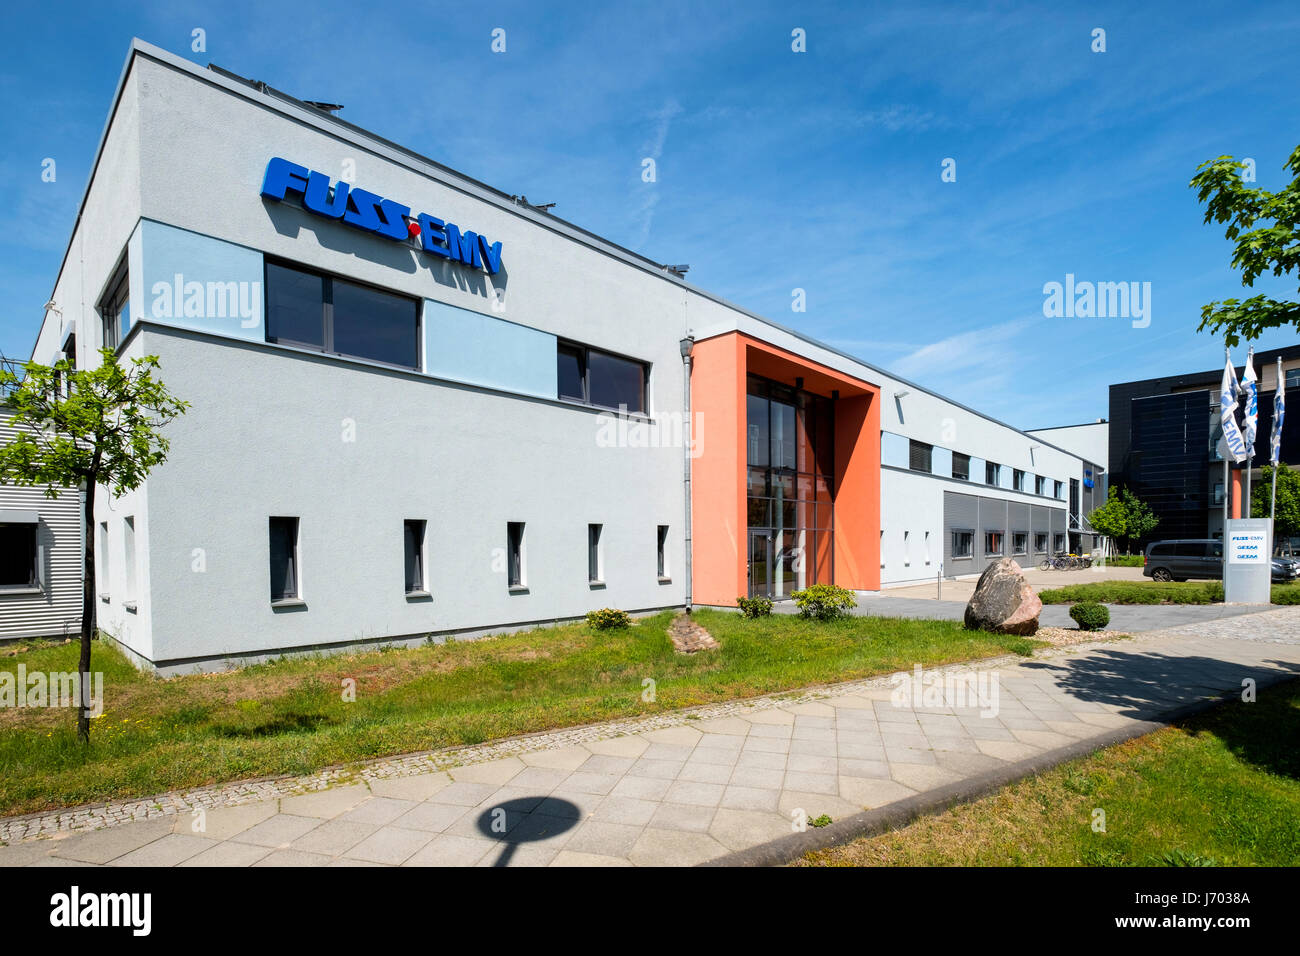 FUSS .EMV electrical engineering building at Adlershof Science and Technology Park  Park in Berlin, Germany - Stock Image